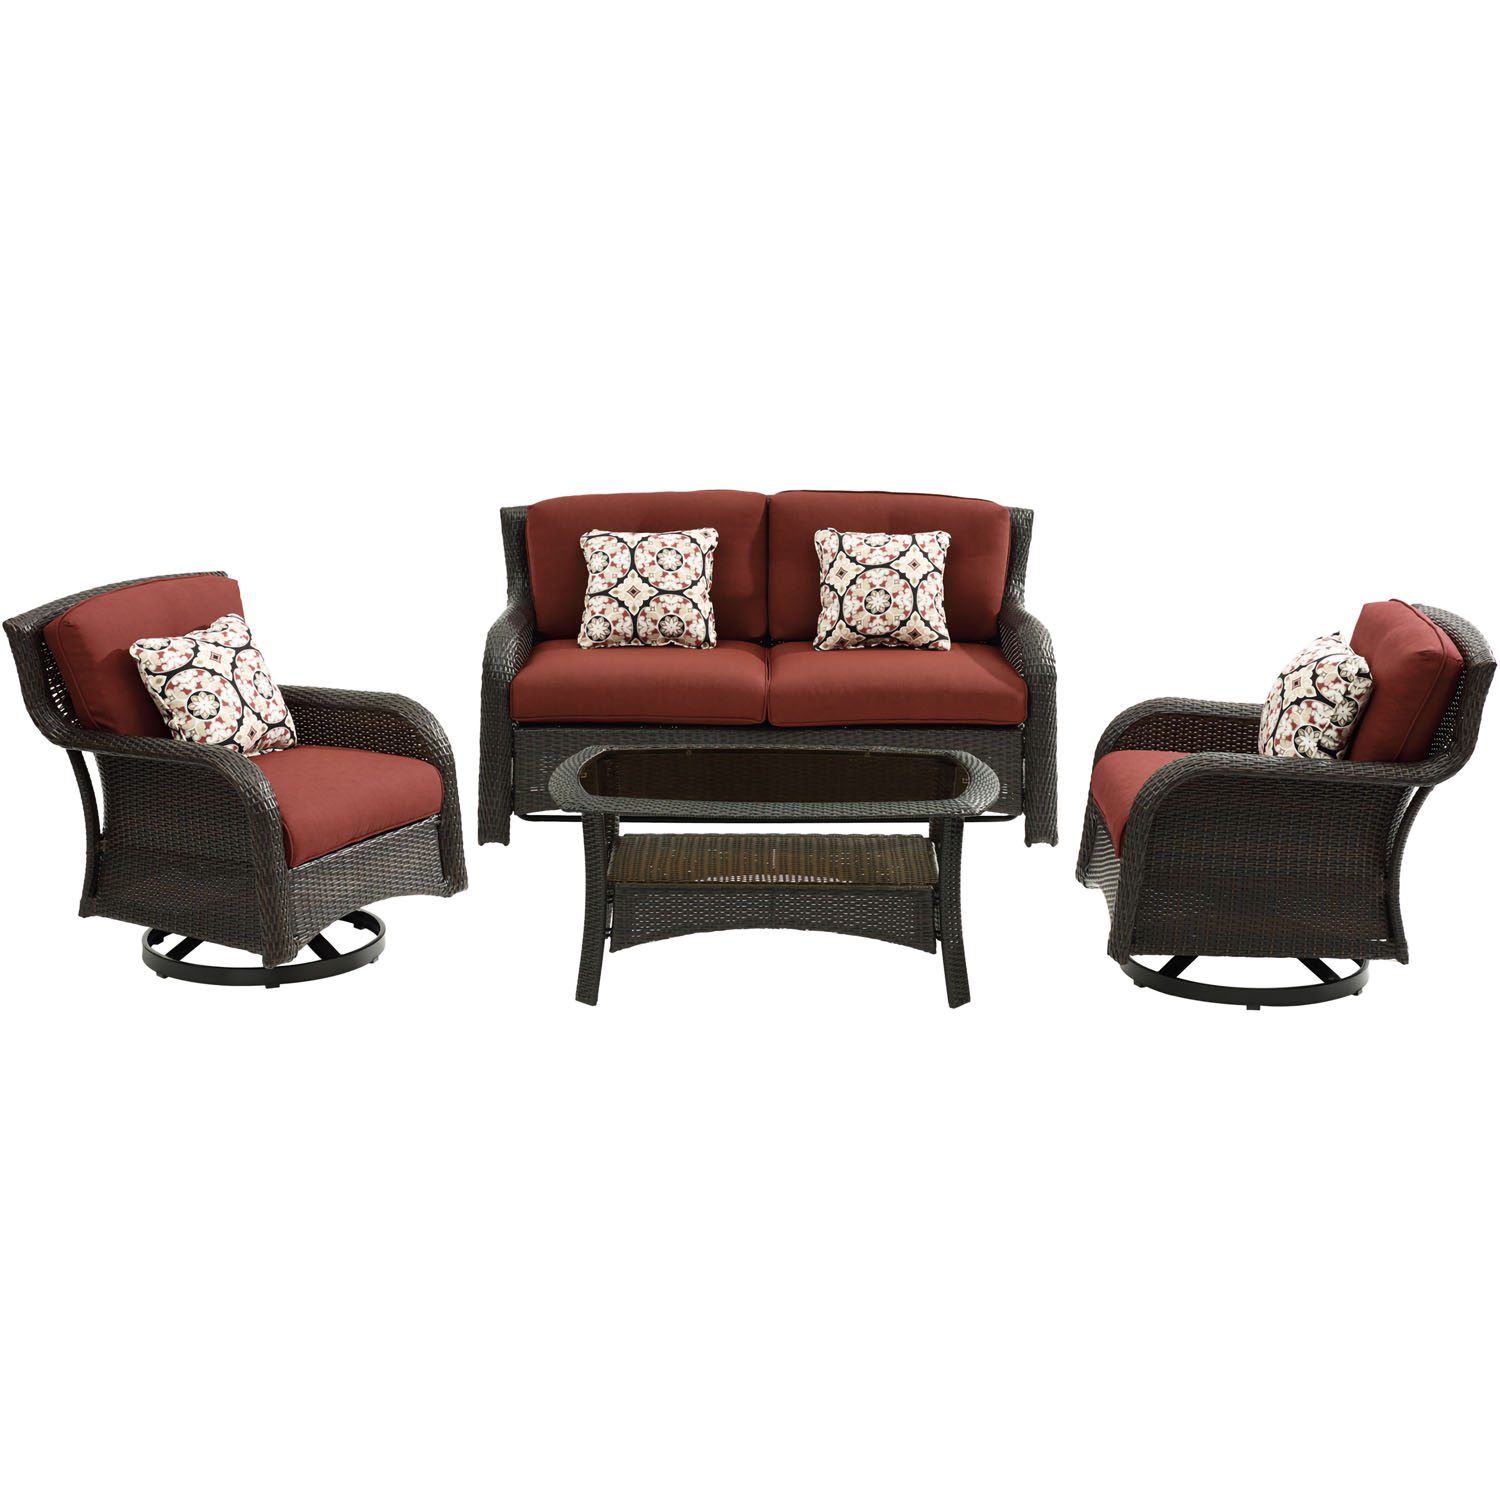 Hanover Strathmere 4-Piece Lounge Set in Crimson Red